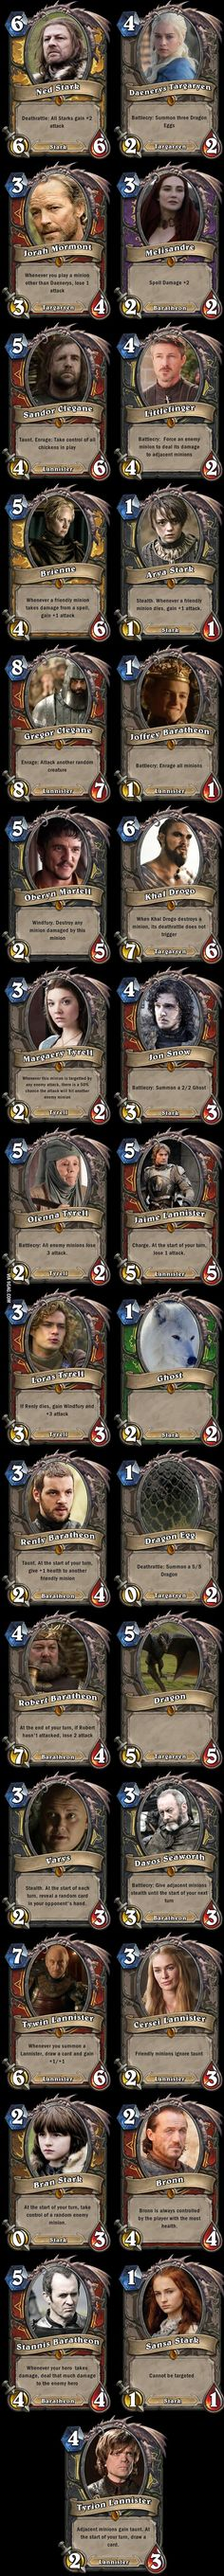 Got & HS crossover, hehehe! #LOL :D